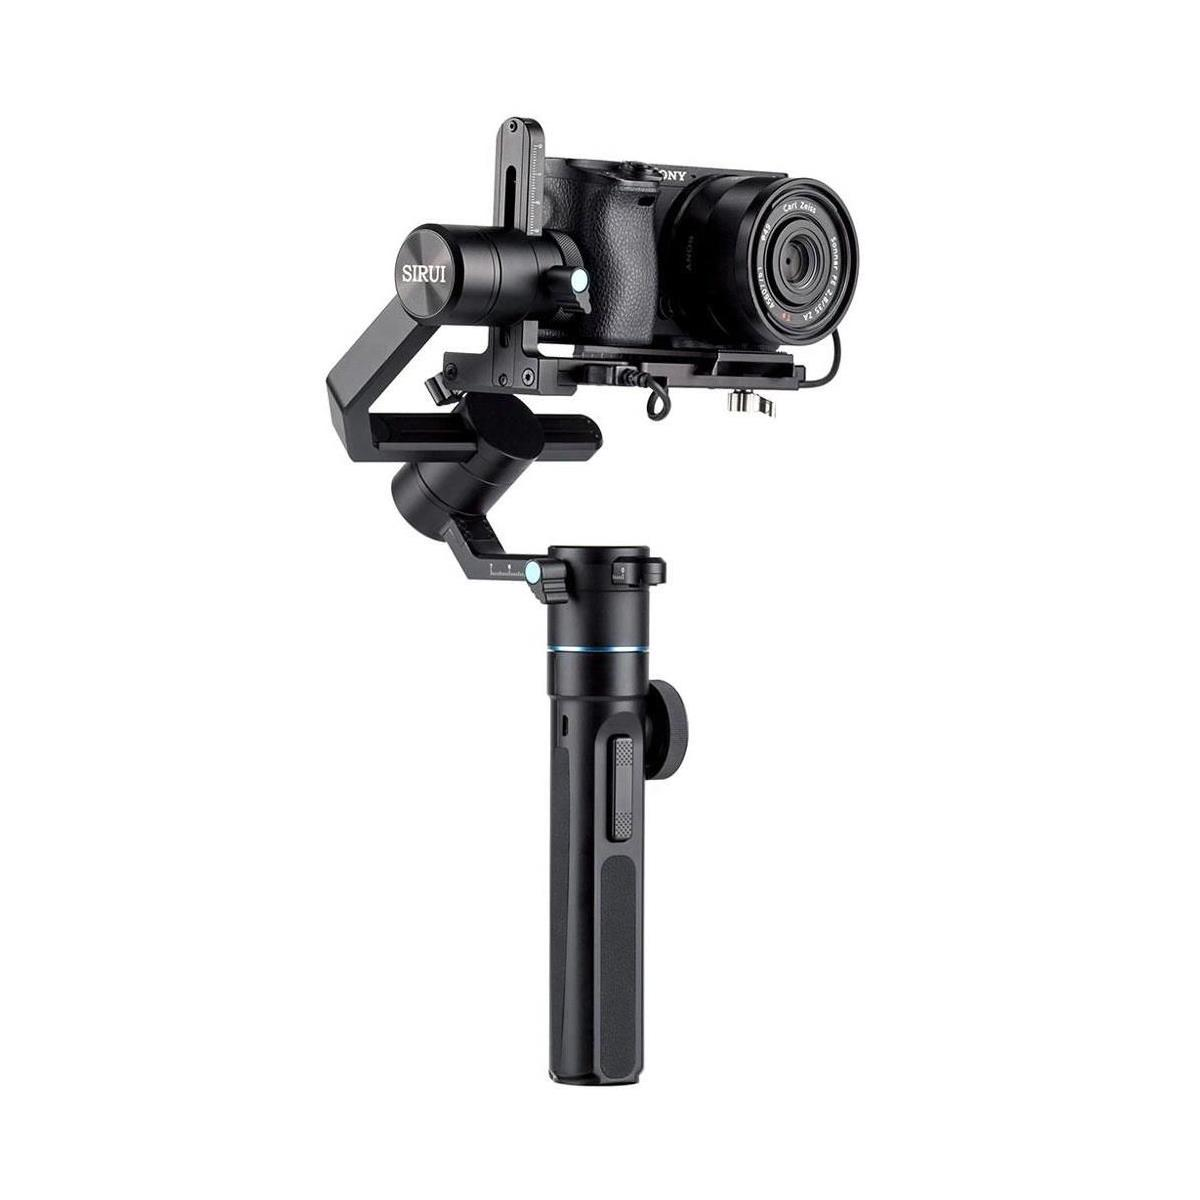 Sirui Swift P1 3-Axis Gimbal Stabilizer for Mobile Phones, Sports and Mirrorless Cameras